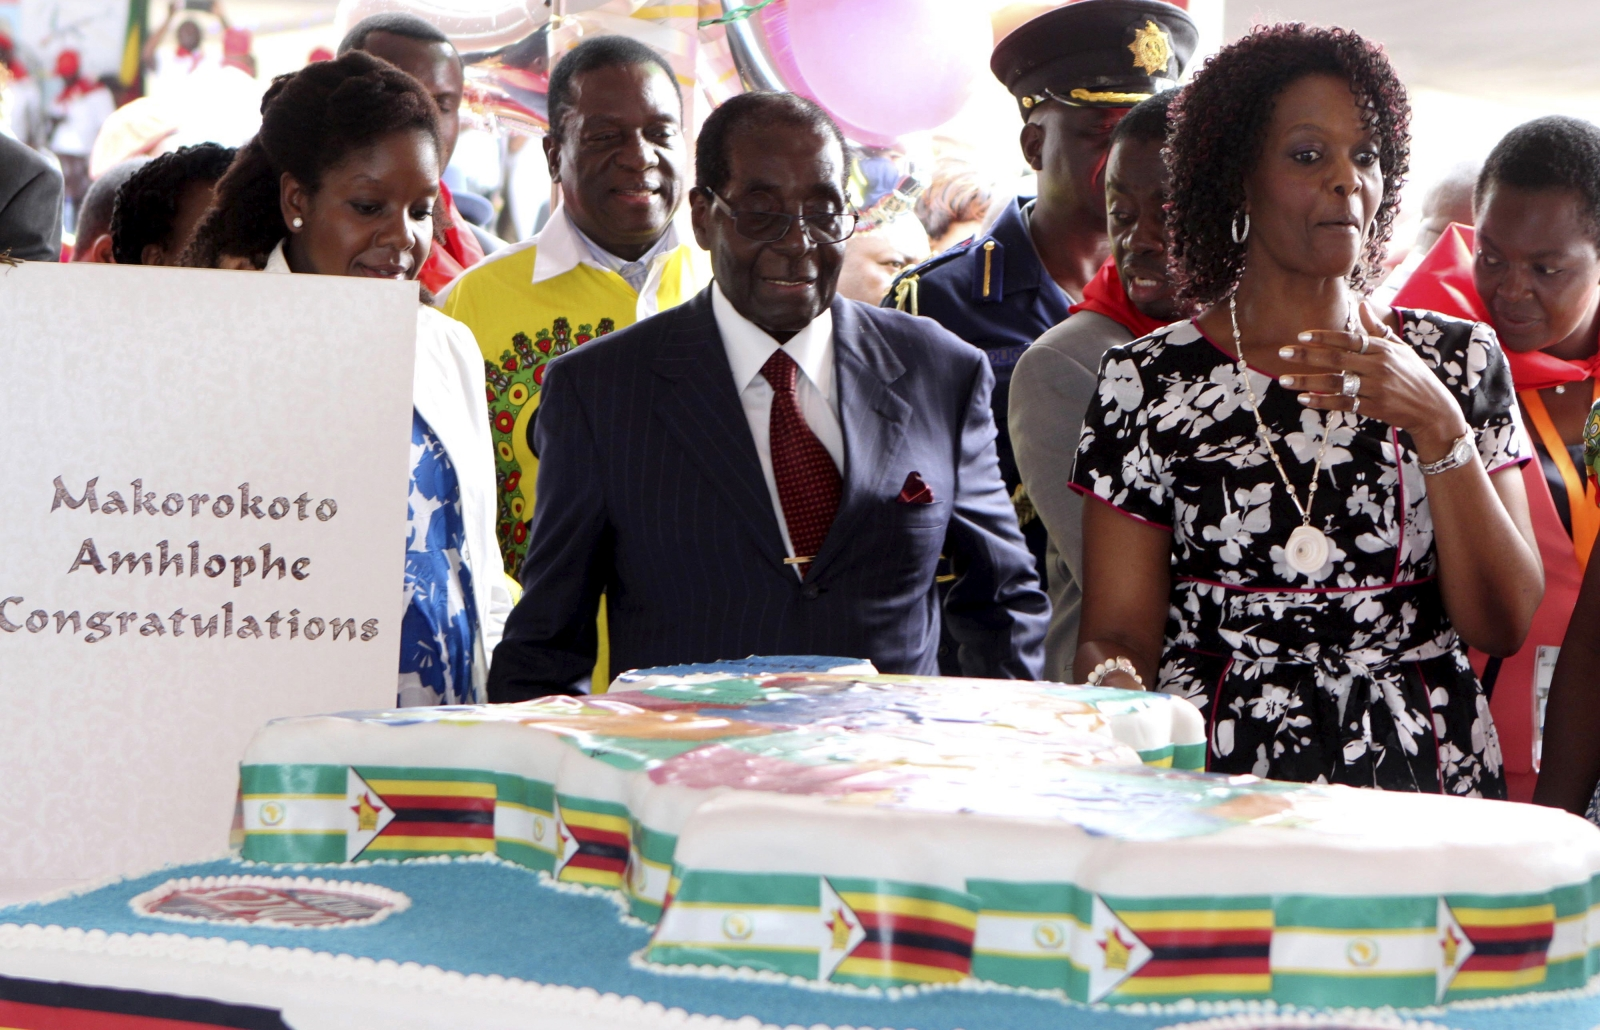 Robert Mugabe Zimbabwean President marks 93rd birthday with faltering TV interview